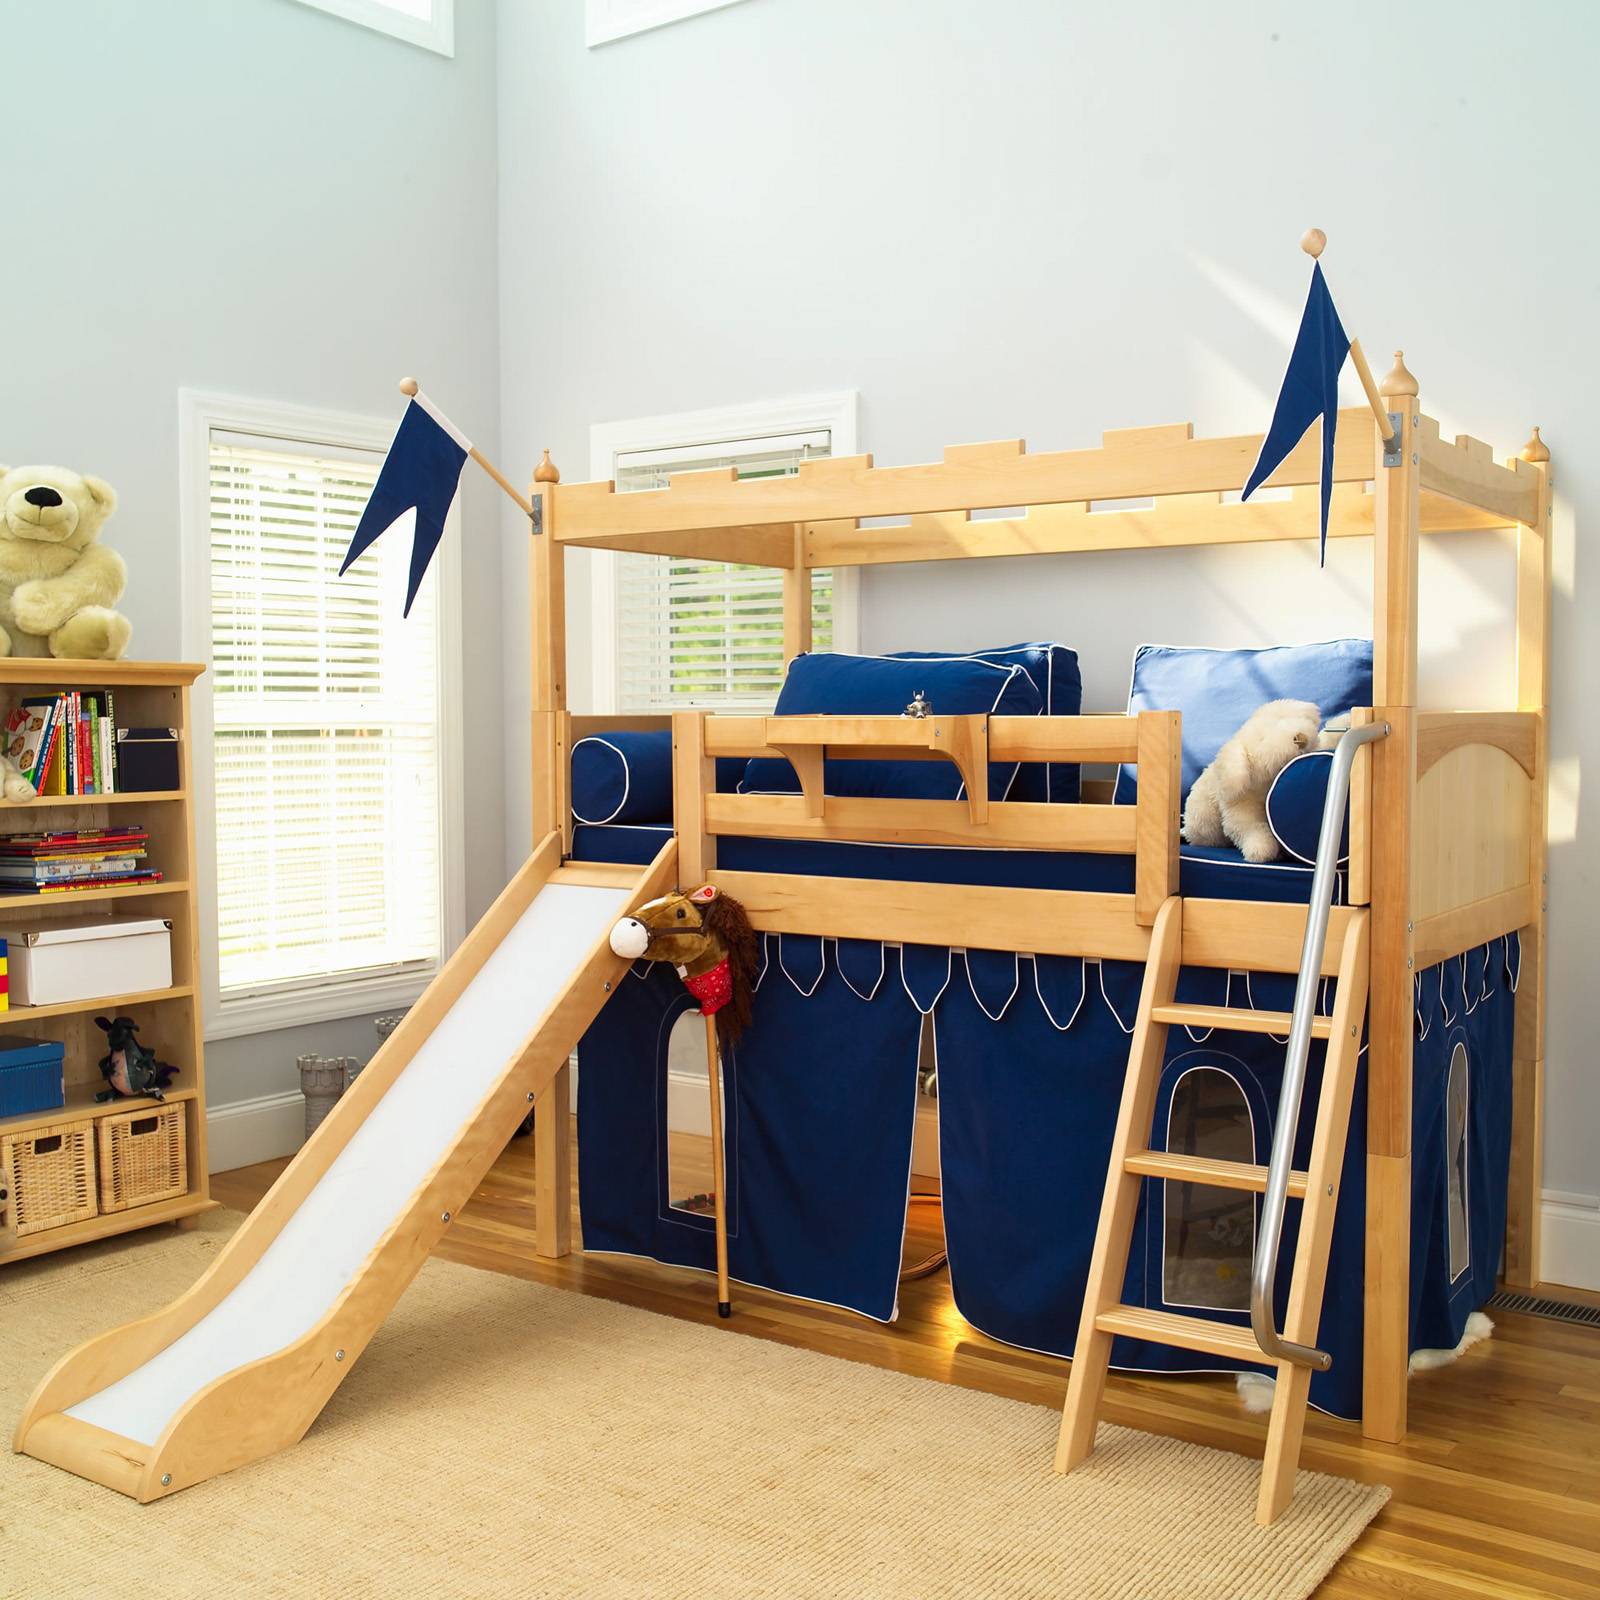 Bunk beds with slide and tent - Bunk Beds With Slide And Tent 18